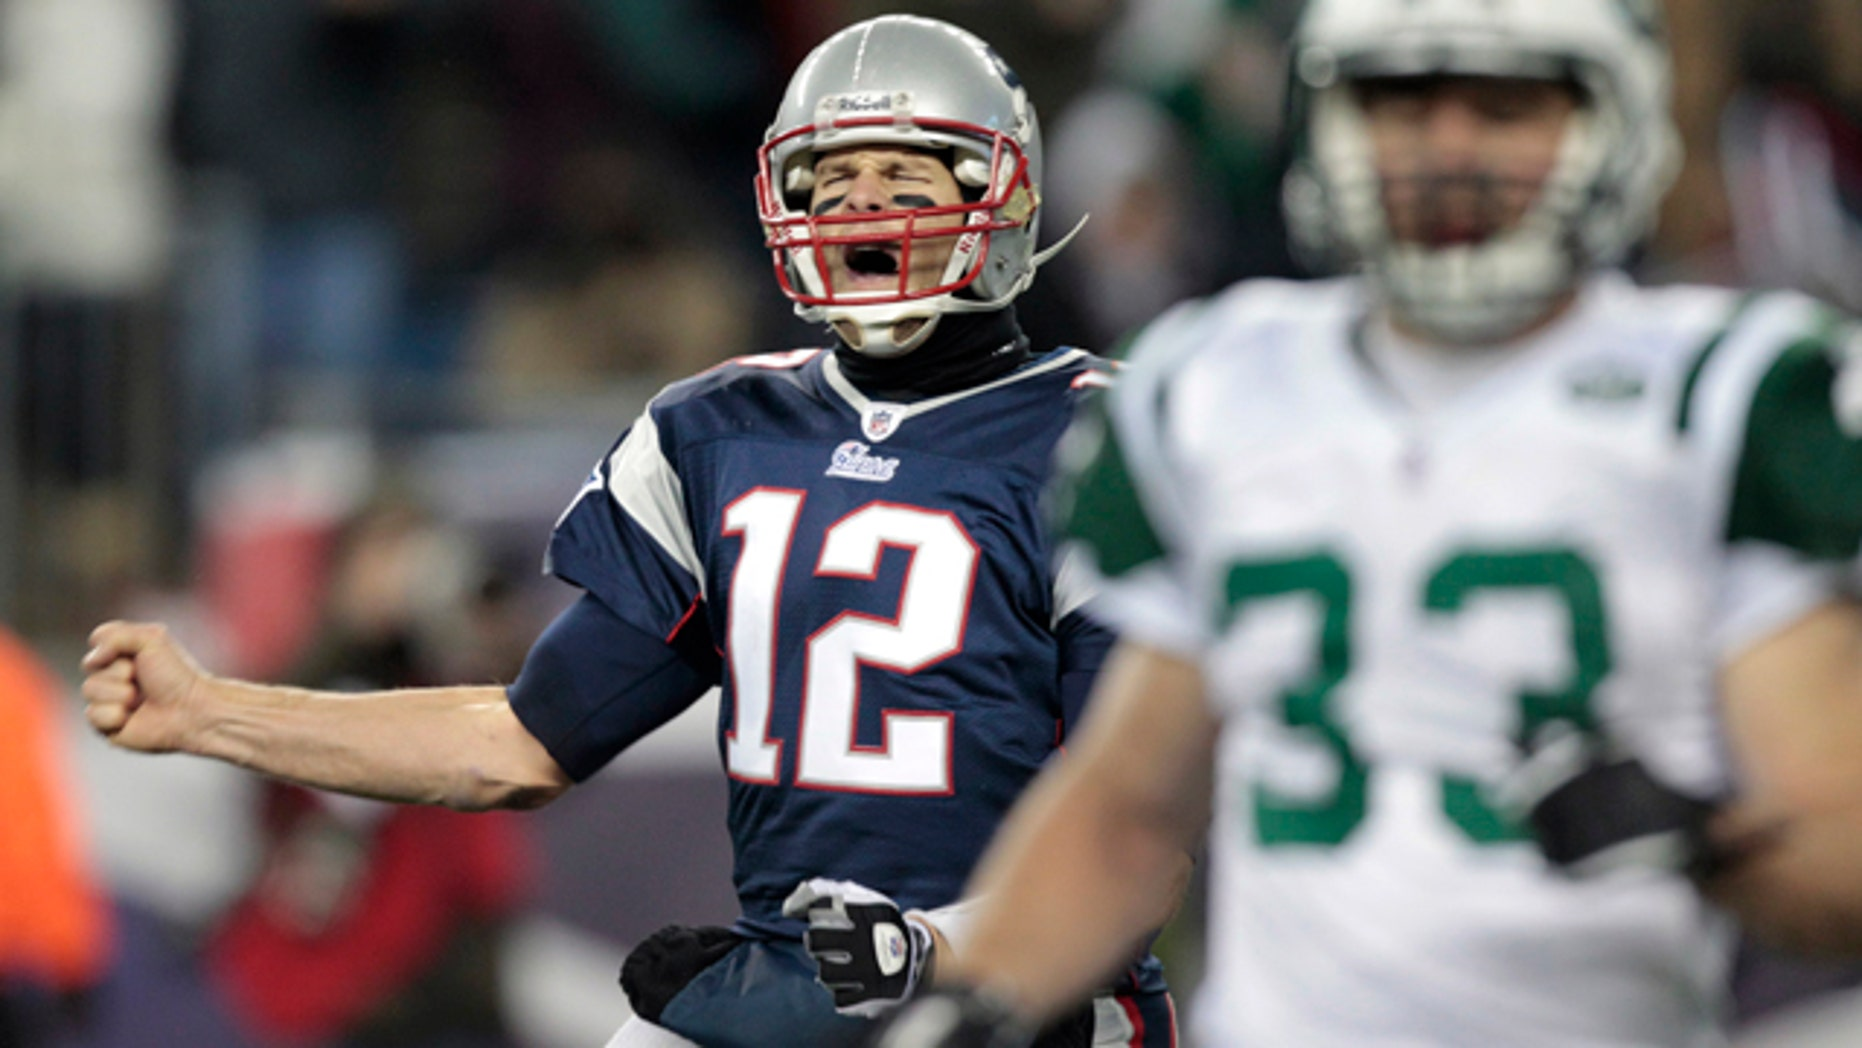 Dec. 6: Patriots QB Tom Brady celebrates after an Aaron Hernandez touchdown in the second half of the Patriots' rout of the New York Jets.